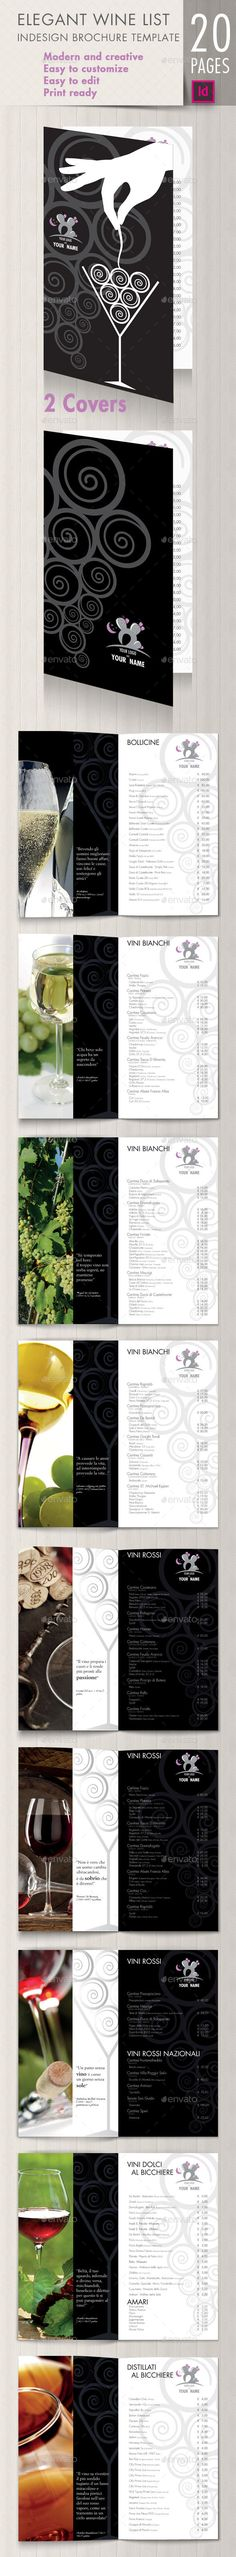 Elegant wine list brochure — InDesign INDD #bottle #menu design • Available here → https://graphicriver.net/item/elegant-wine-list-brochure/9595521?ref=pxcr